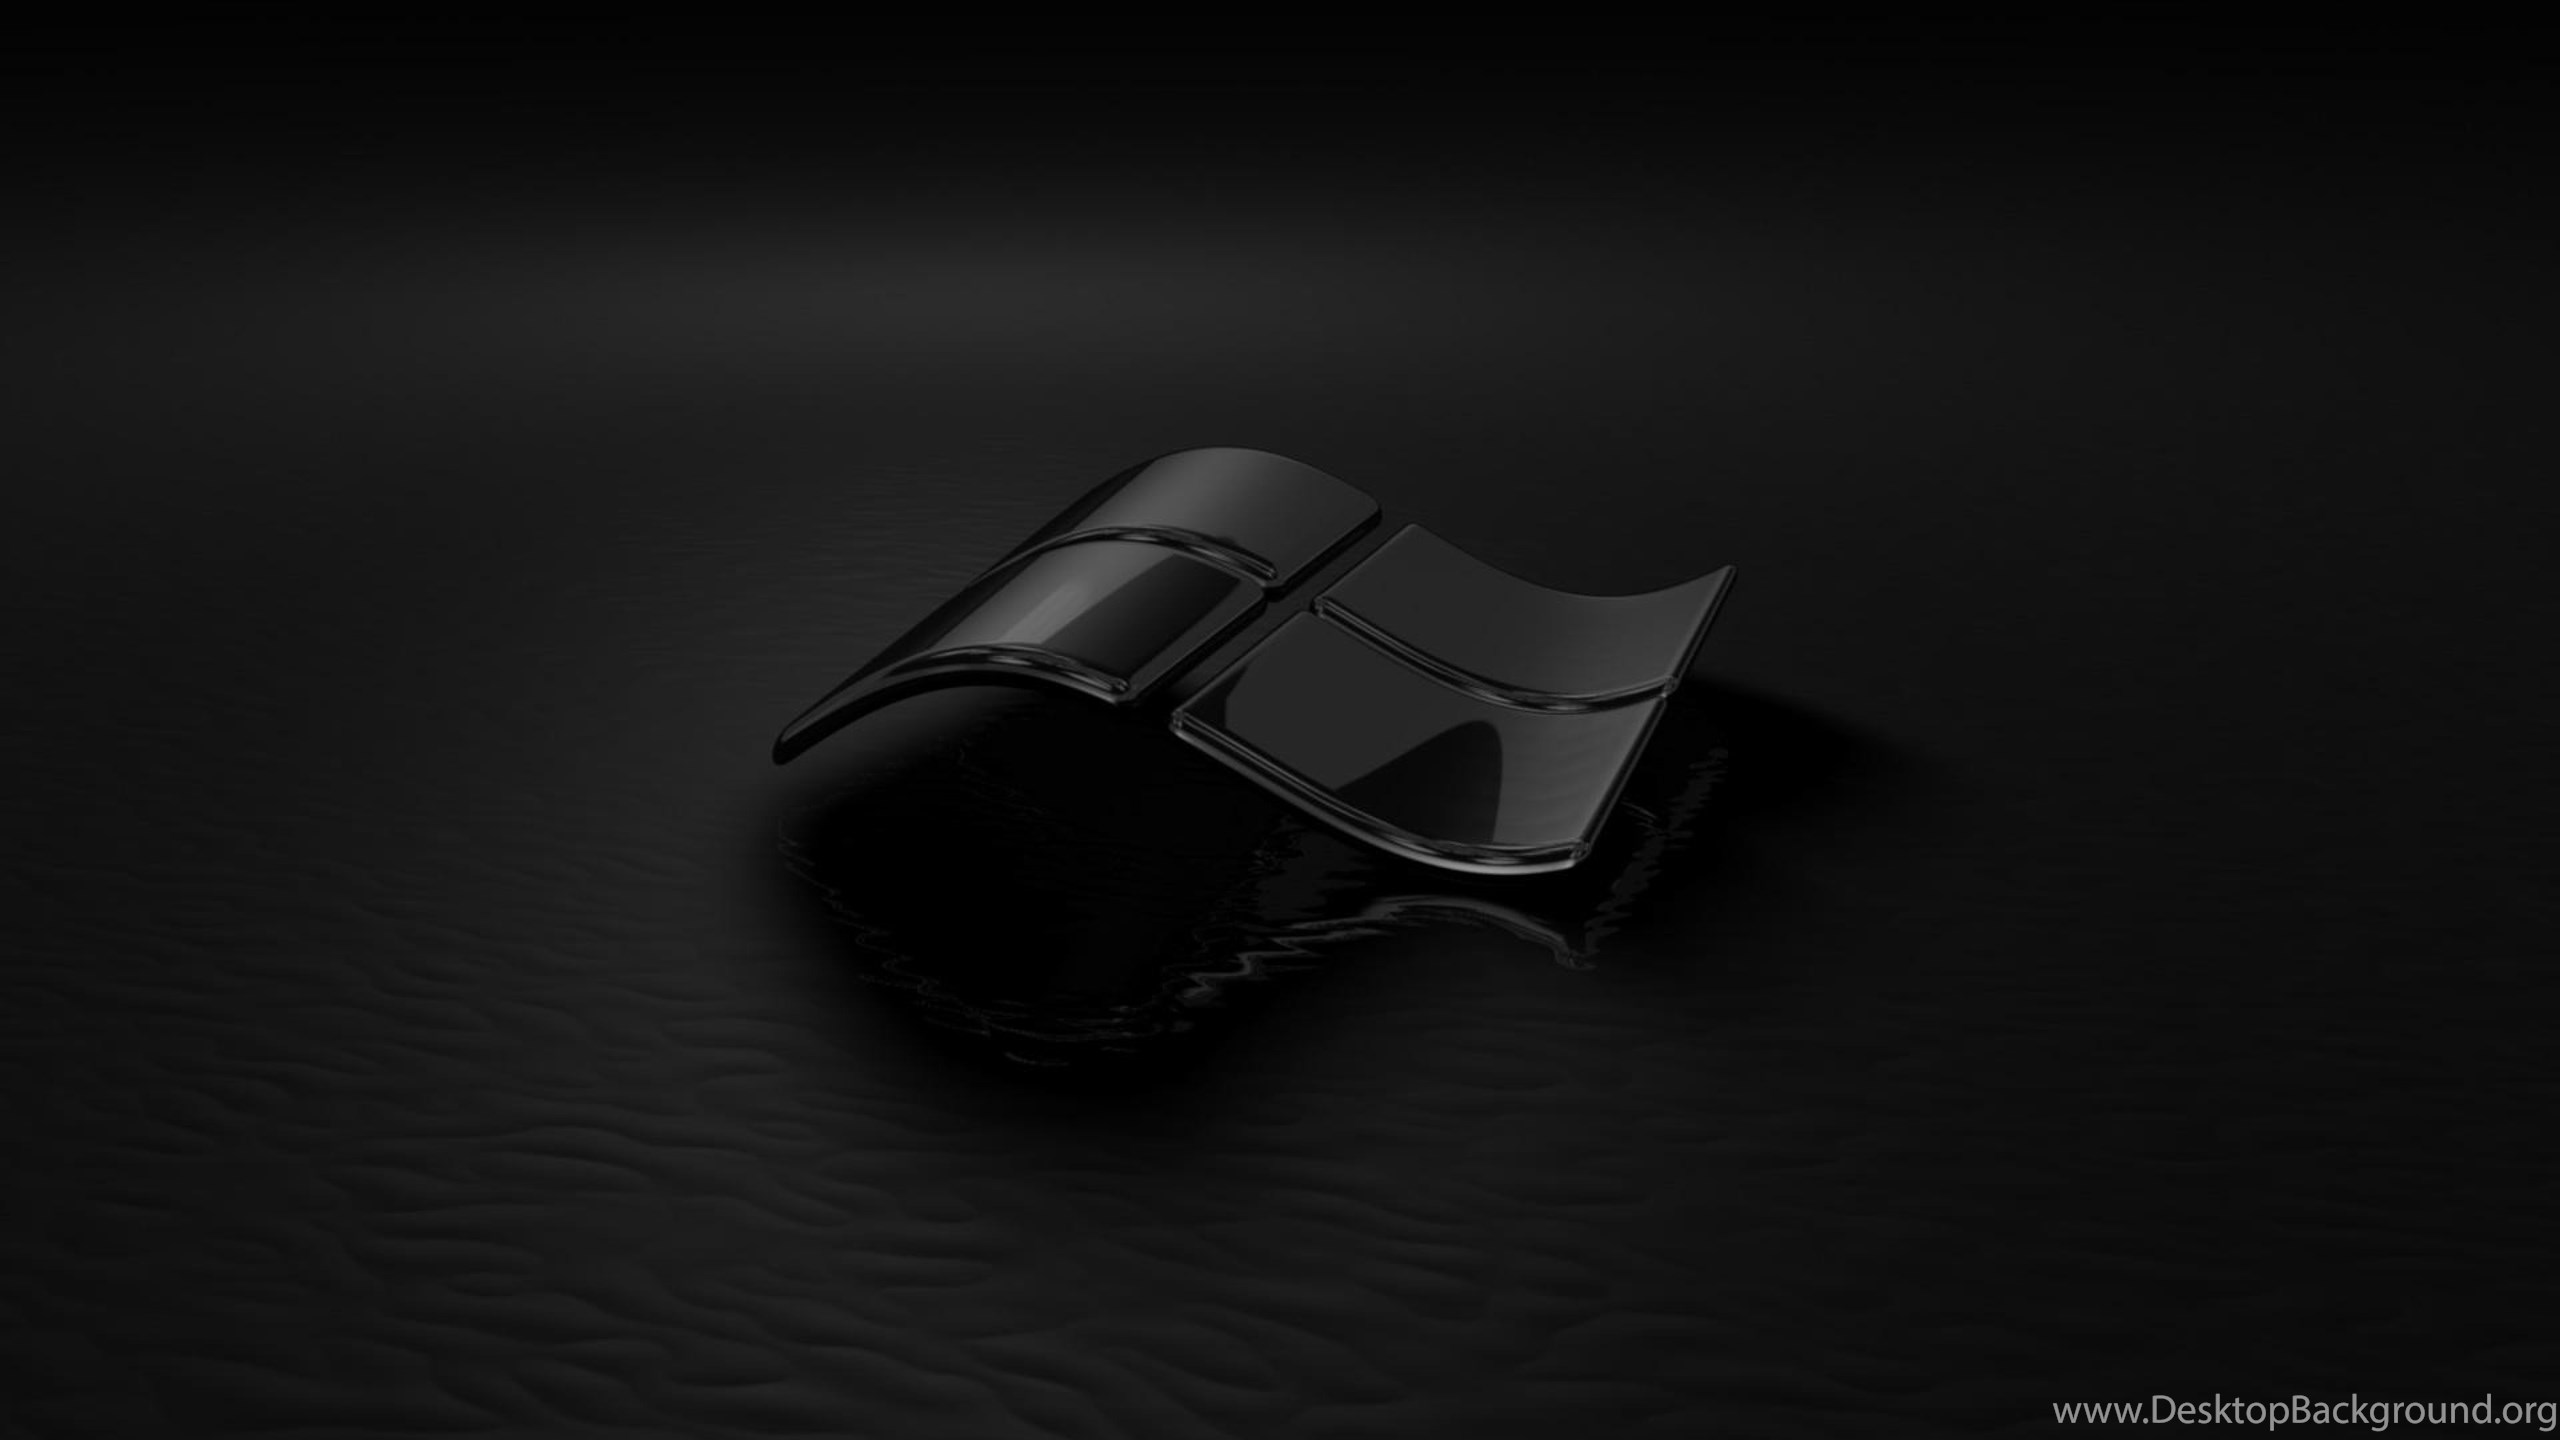 download wallpapers 3840x2160 windows 7, black, glass, reflection